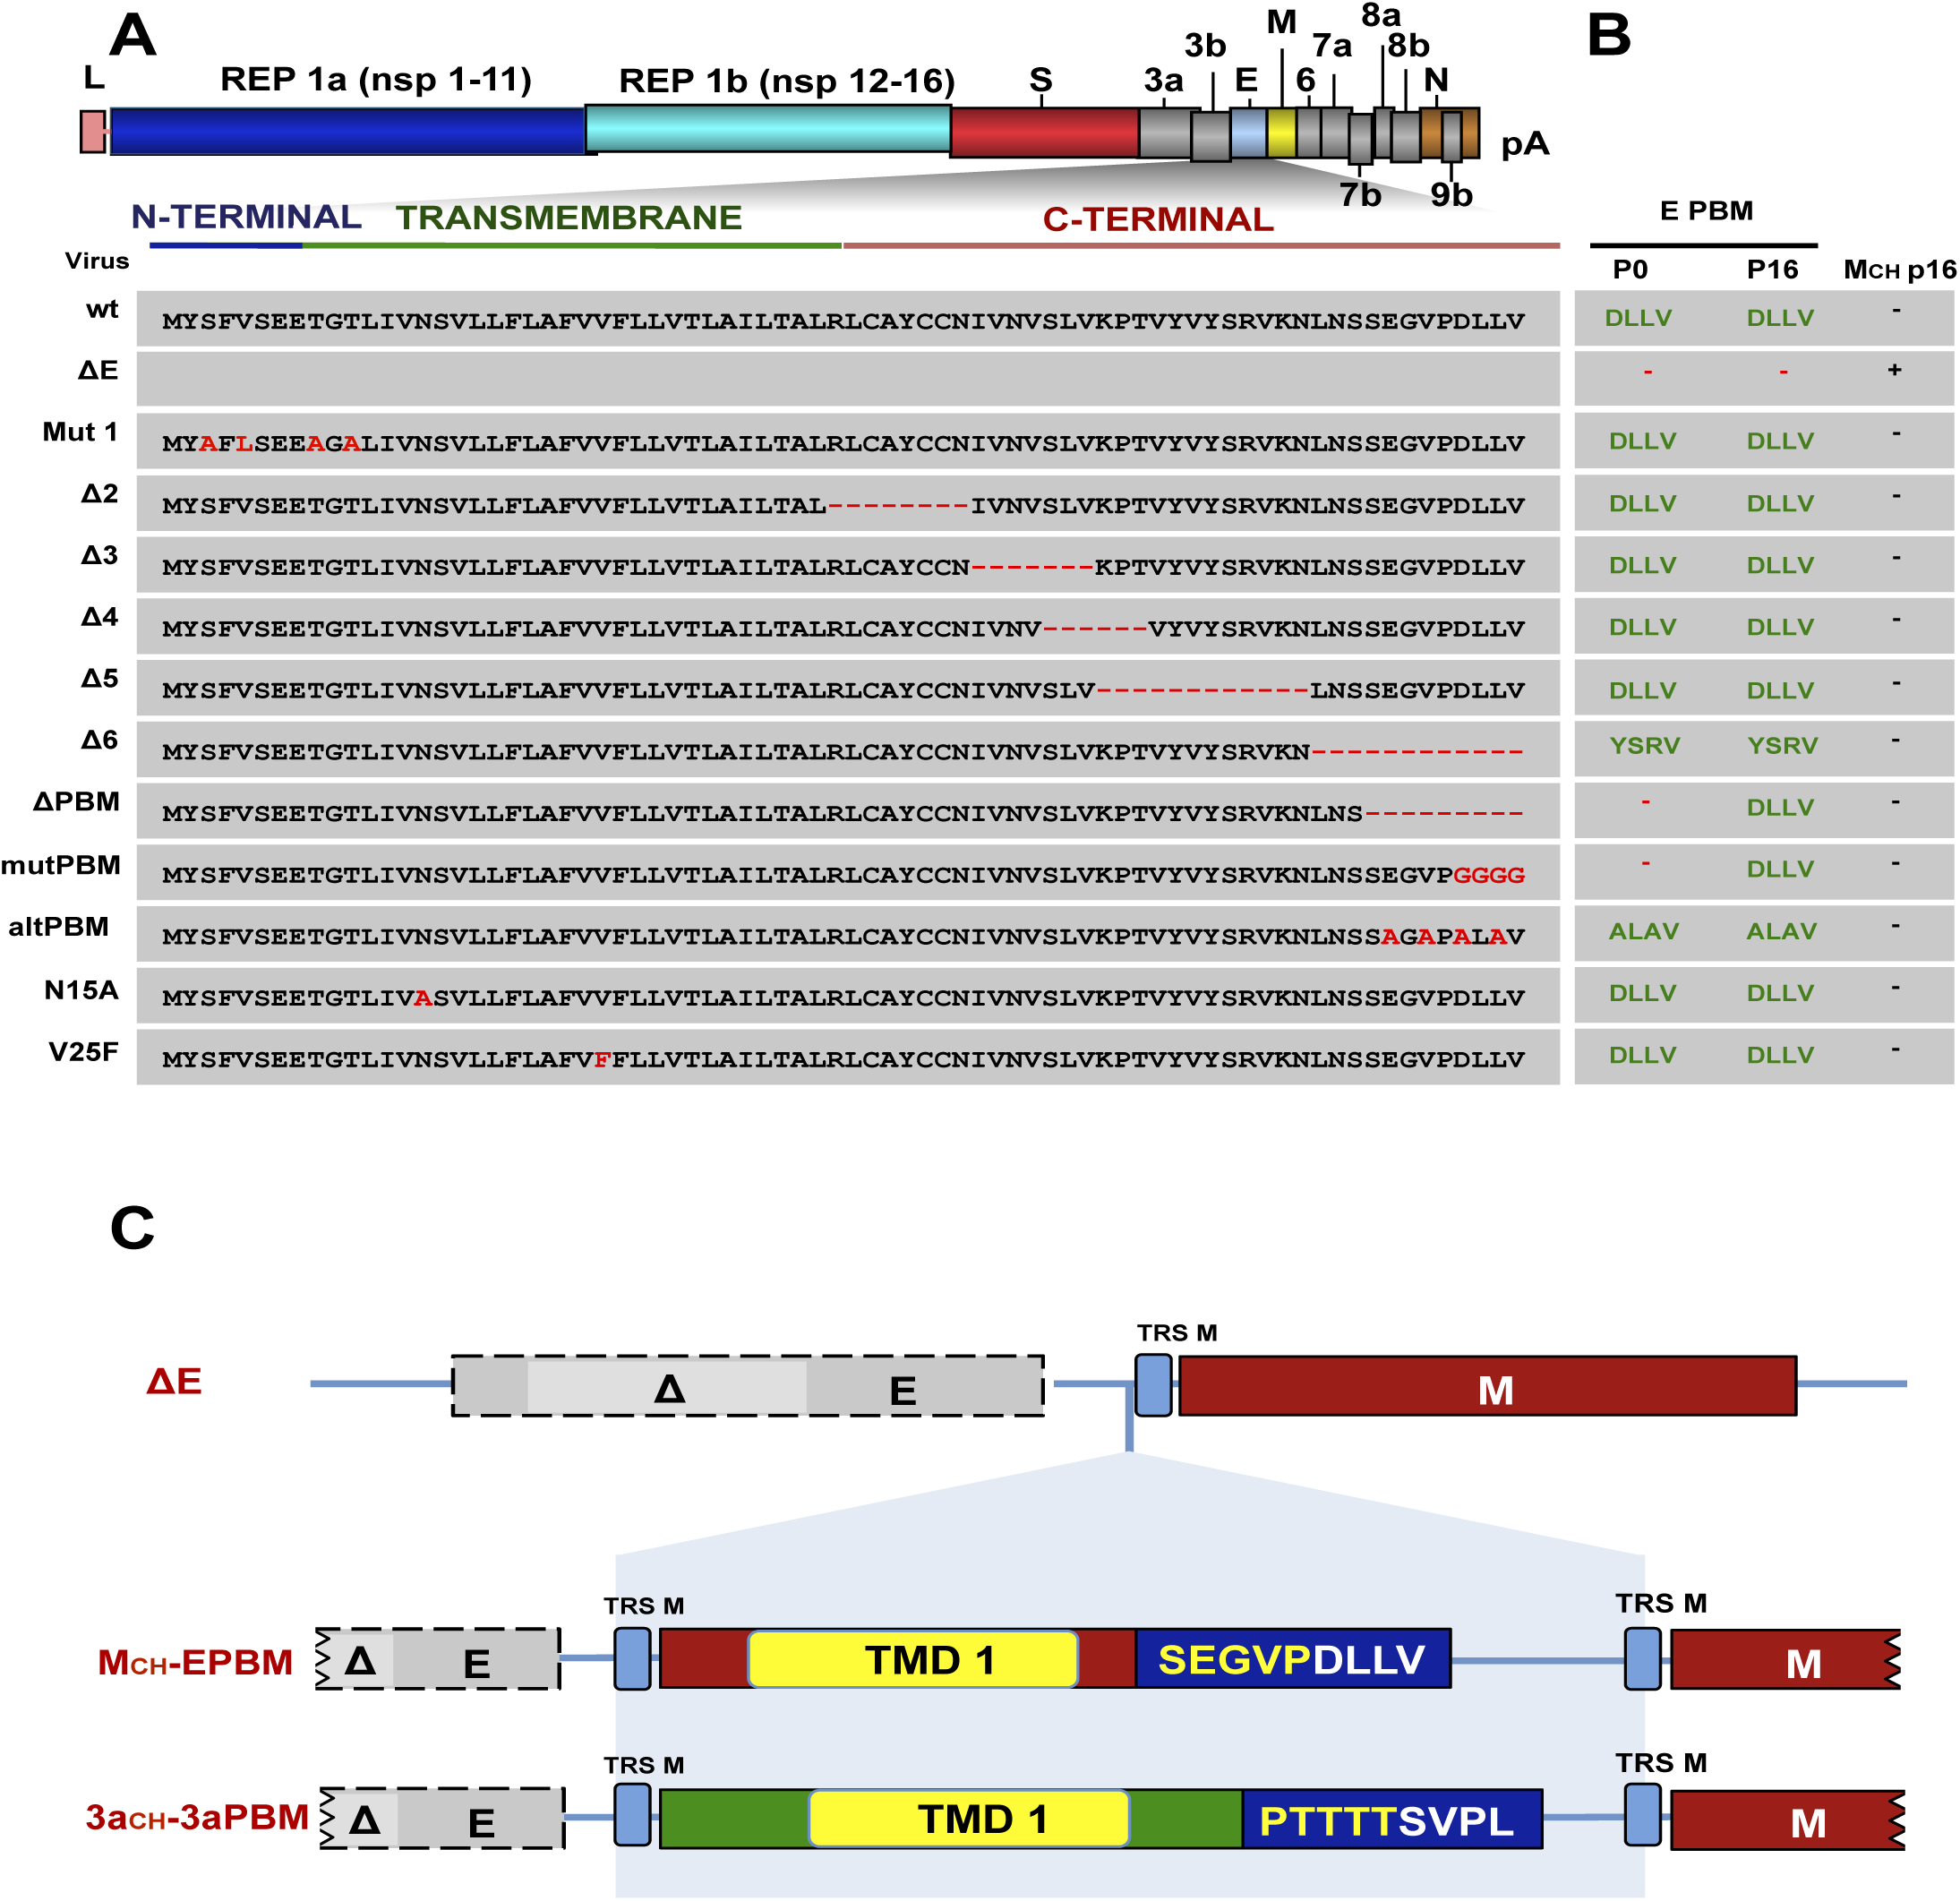 Identification of E protein domain involved in chimeric protein generation in cell culture.